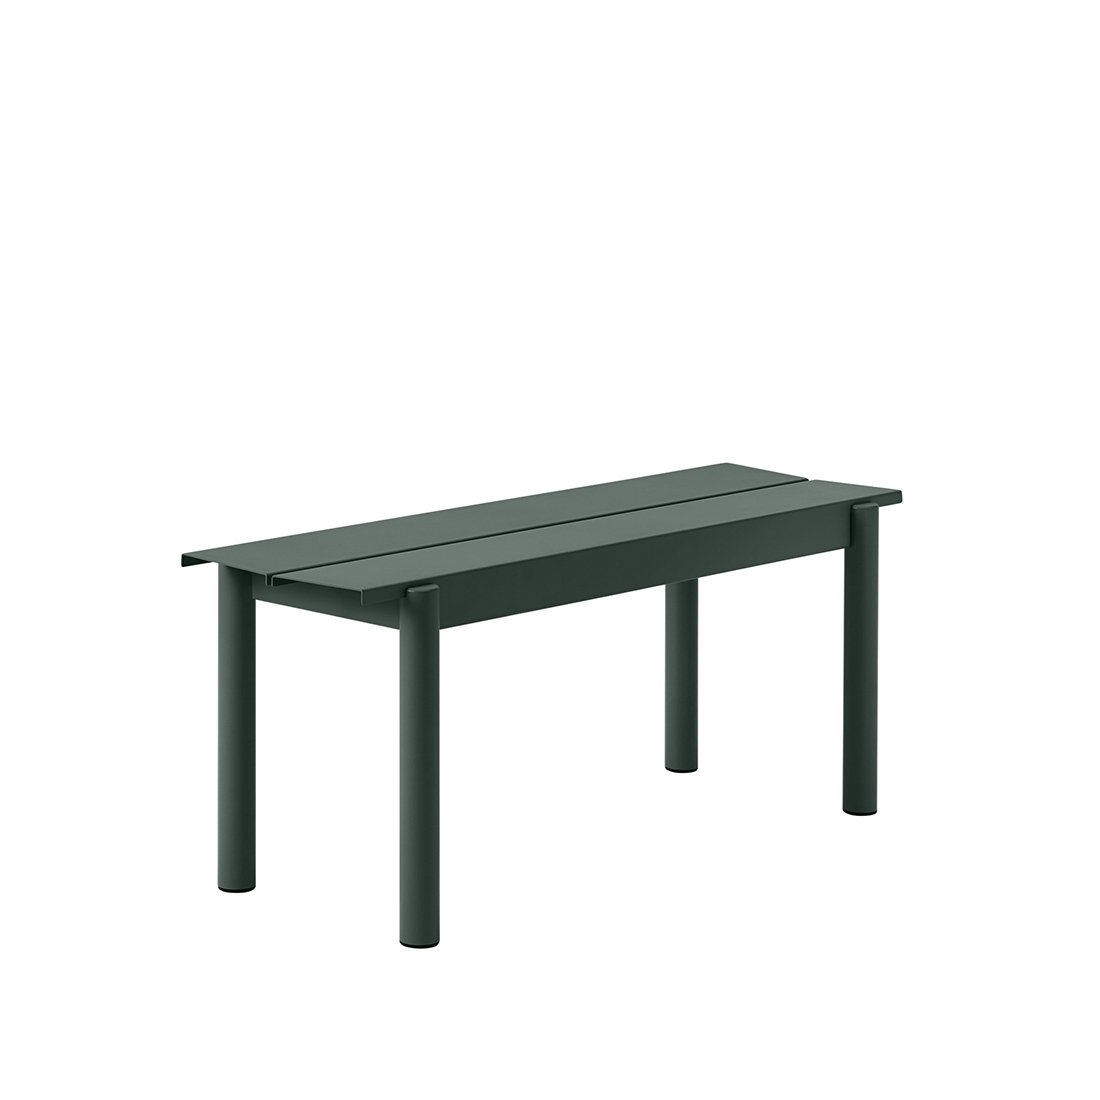 Muuto Linear Steel Bank Dark Green - b. 110 cm.